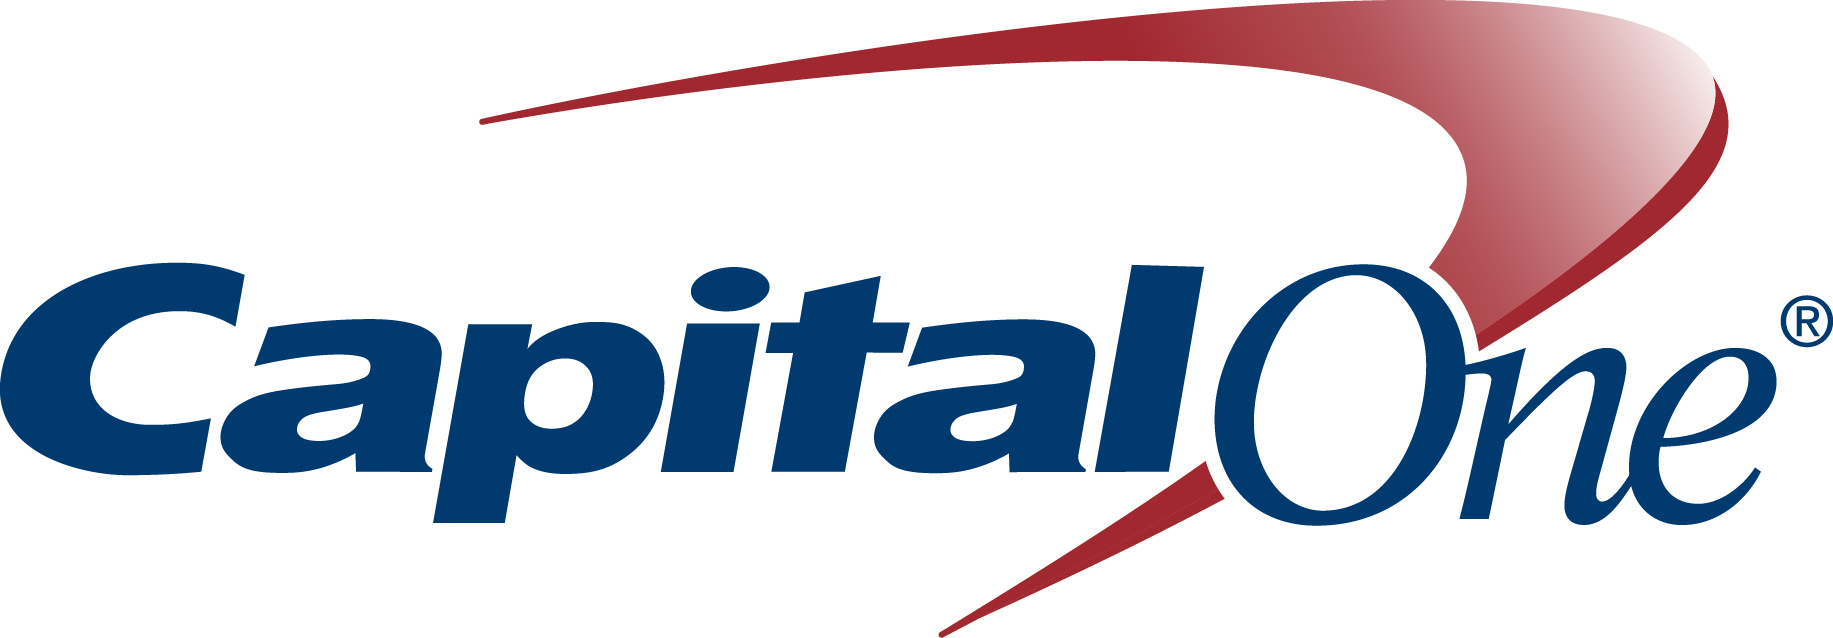 Capital One Philippines Support Services Corp. (COPSSC)